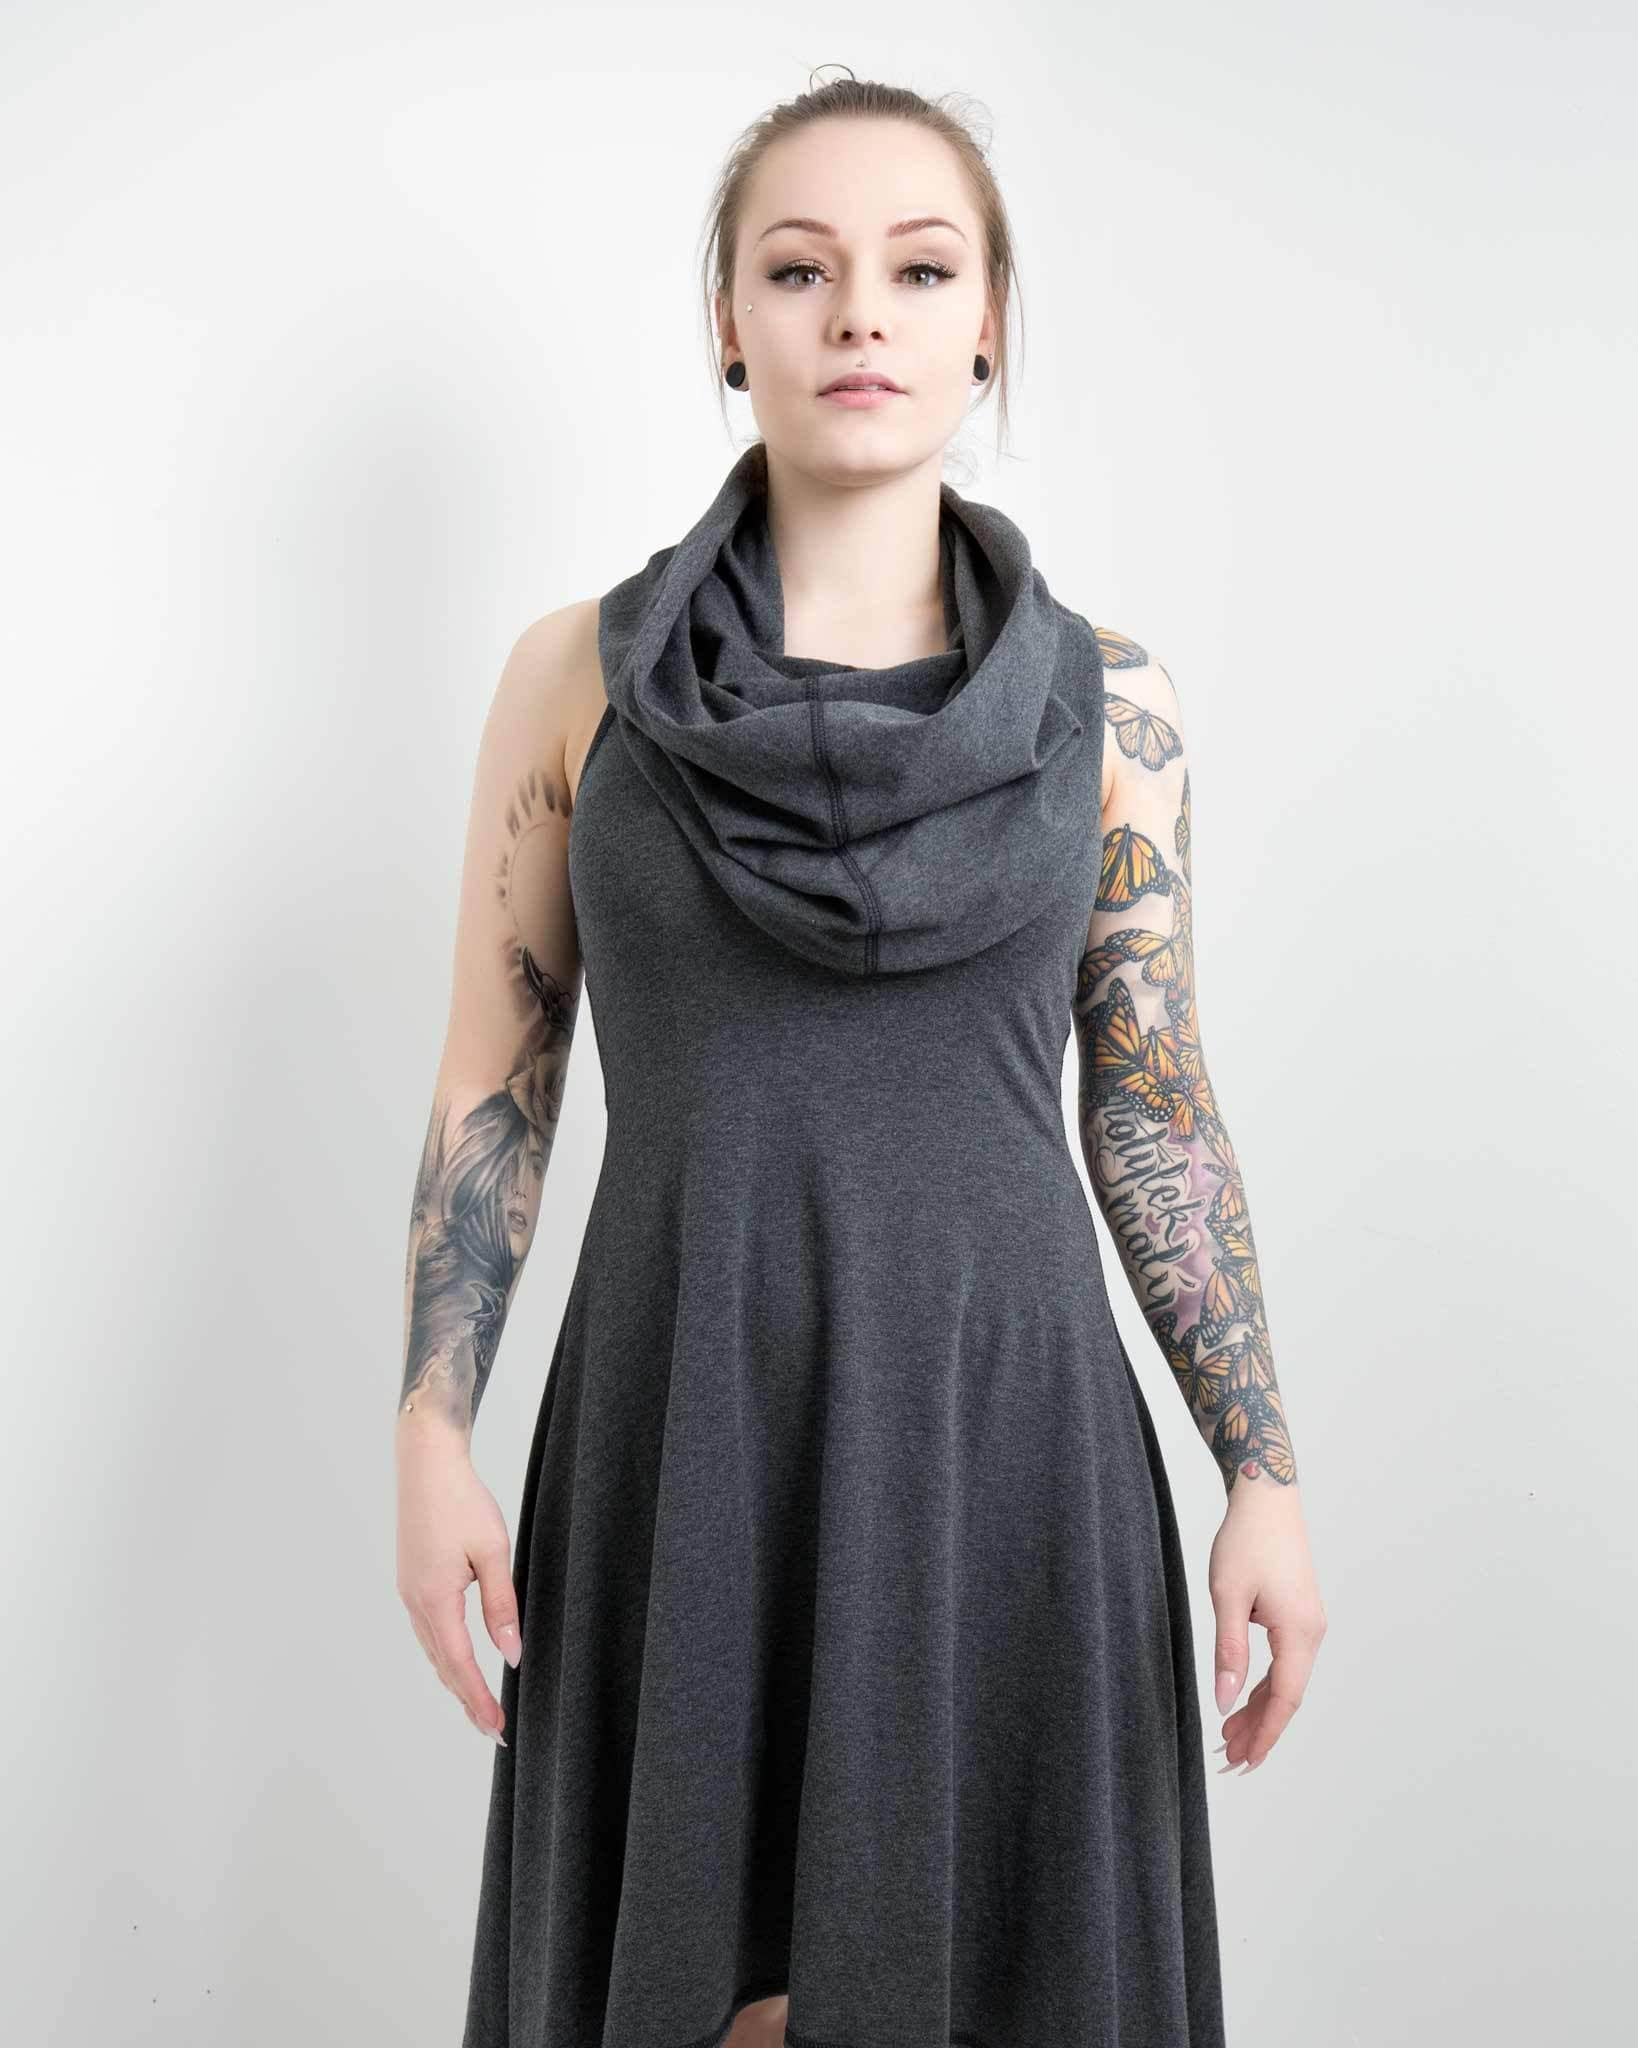 lightweight women's dress with cowl built in, modern look